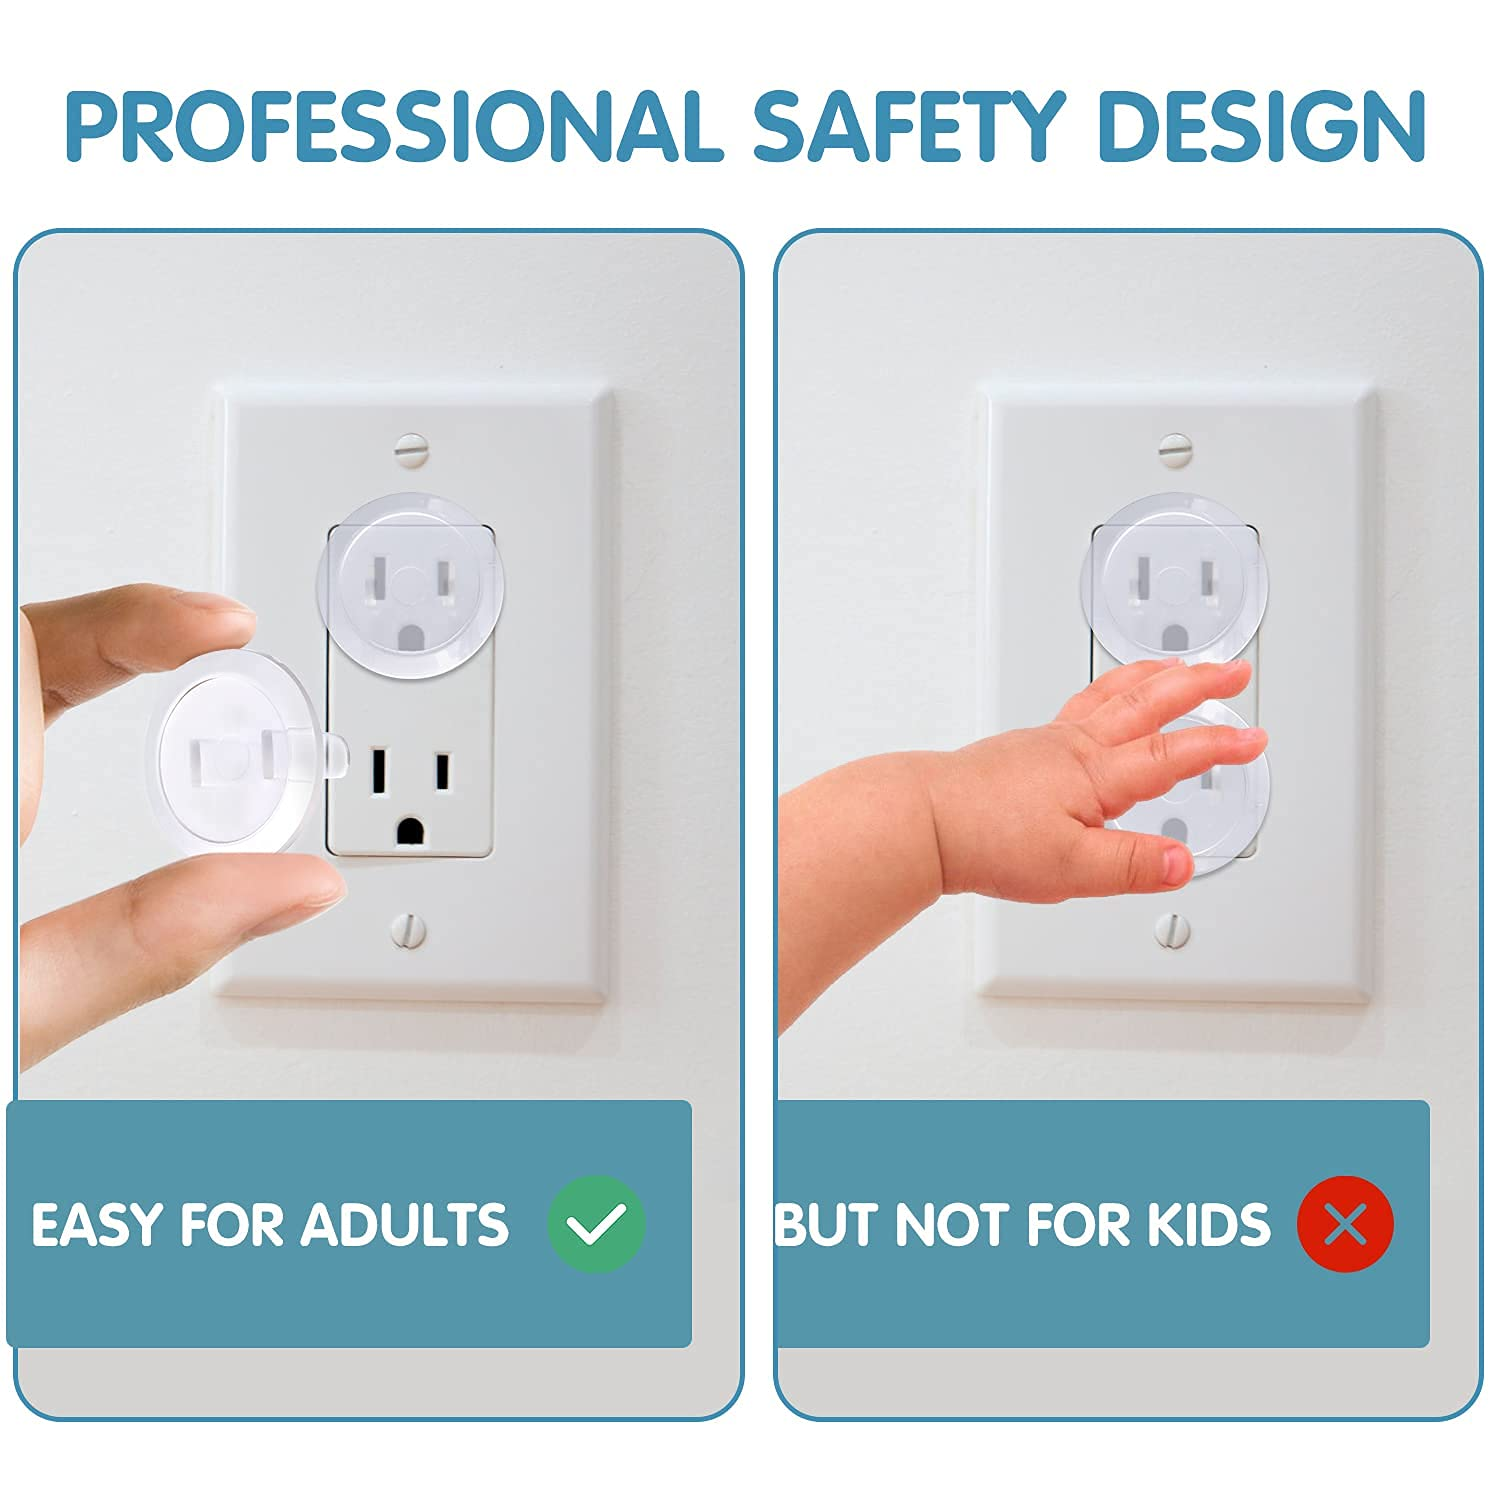 Outlet Covers Baby Proofing (36 Pack) Plug Covers for Electrical Outlets Baby Safety Outlet Plug Covers Environmental Durable Reliable Baby Safety Products